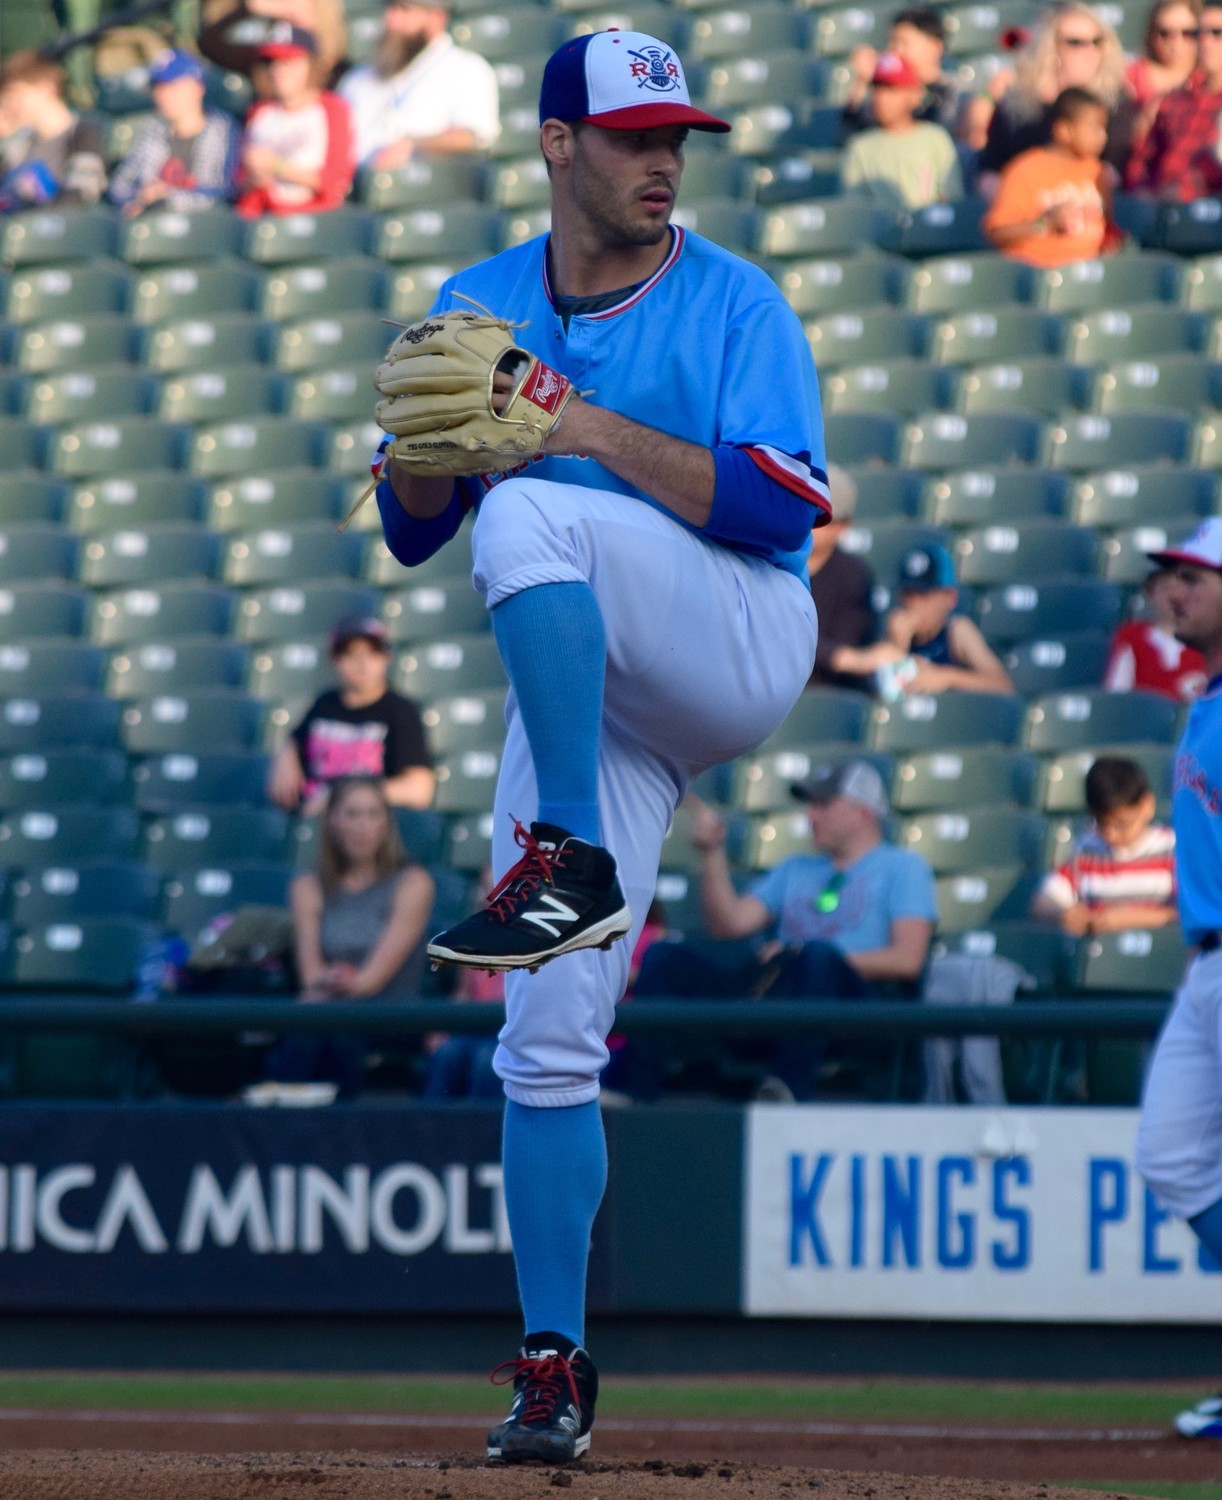 Express starter David Ledbetter allowed two runs on four hits with four walks and three strikeouts in six innings of work and Round Rock lost to the New Orleans Baby Cakes 8-4 Thursday night.